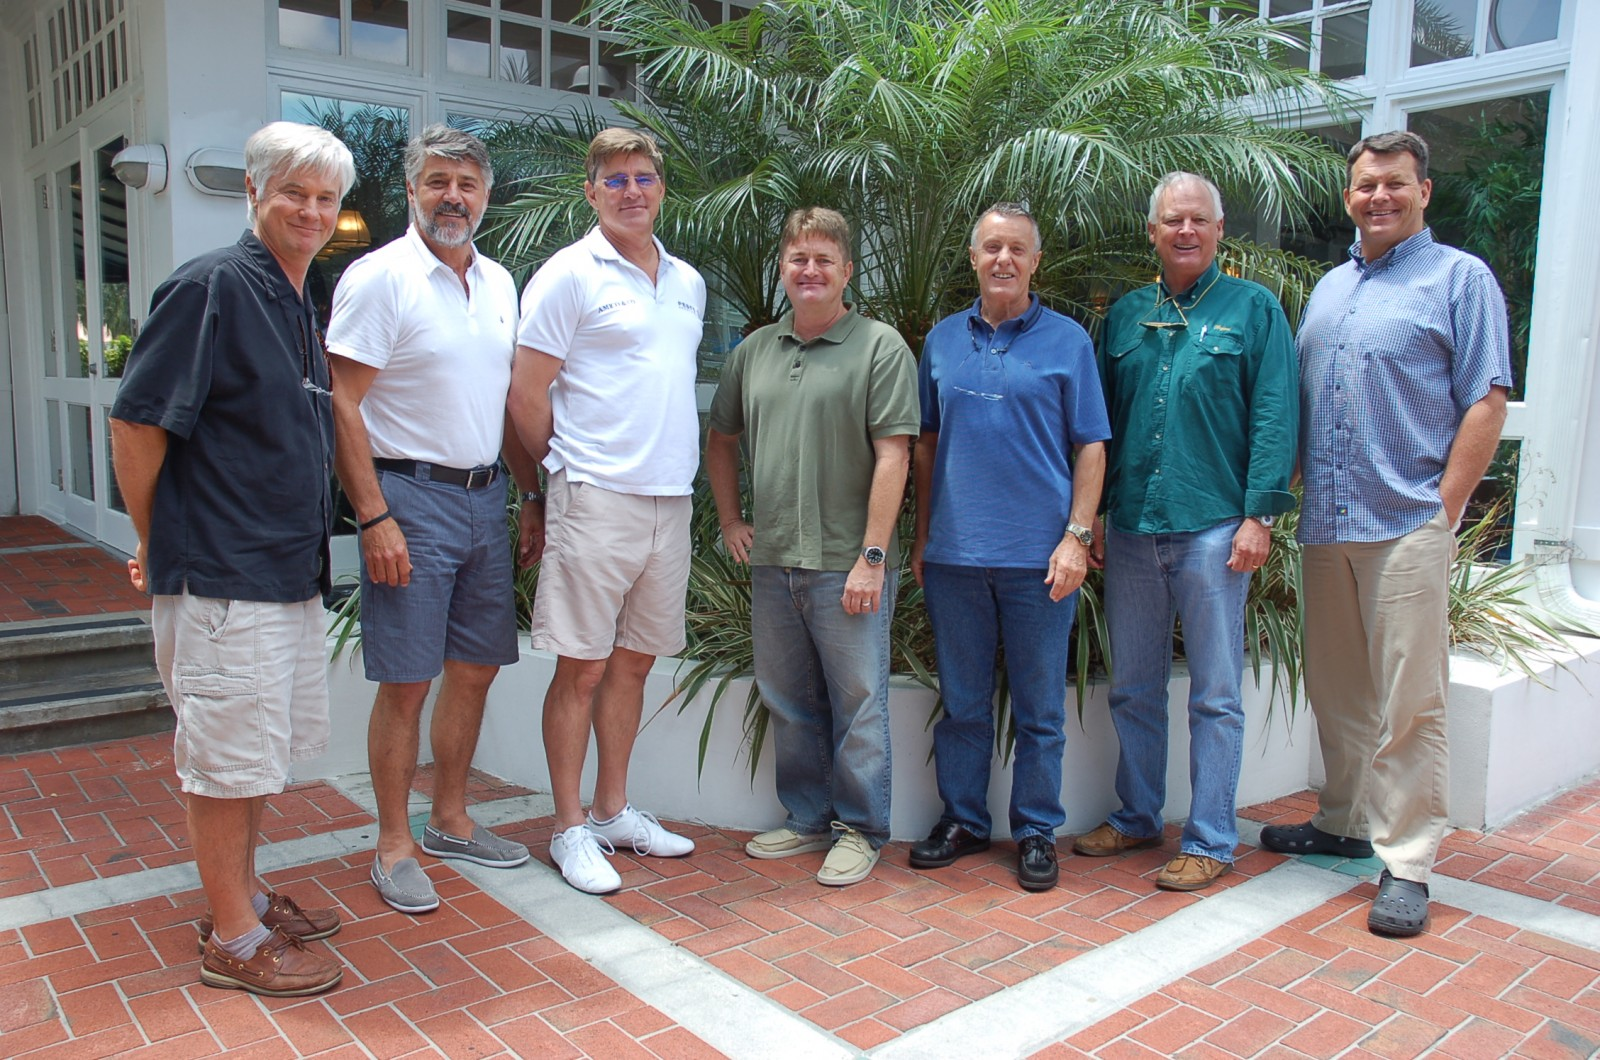 Attendees of The Triton's May Bridge luncheon were, from left, Robb Shannon of M/Y My Maggie, Andre Peens of M/Y Lazy Z, John Fleckenstein of M/Y Apogee, Patrick Allman (freelance), Robert Peel (freelance), Guy O'Connor of Fleet Relief, and Herb Magney of M/V Miss Aline. PHOTO/LUCY REED